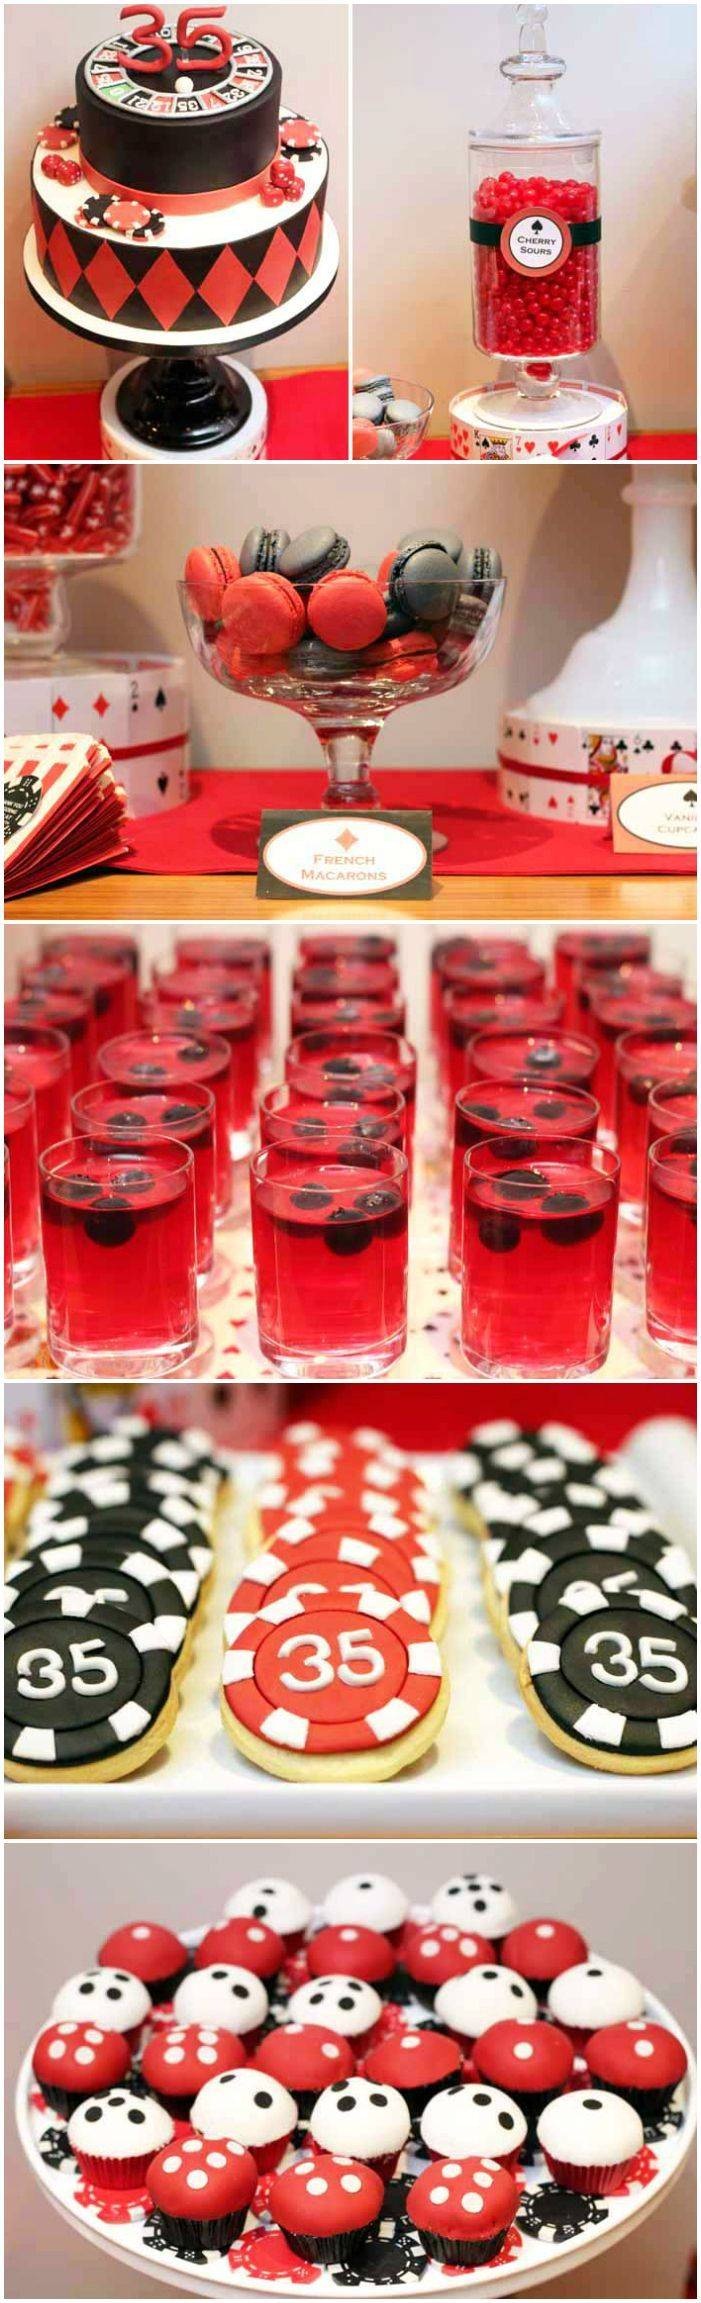 Party Theme ● Poker Party Dessert Table